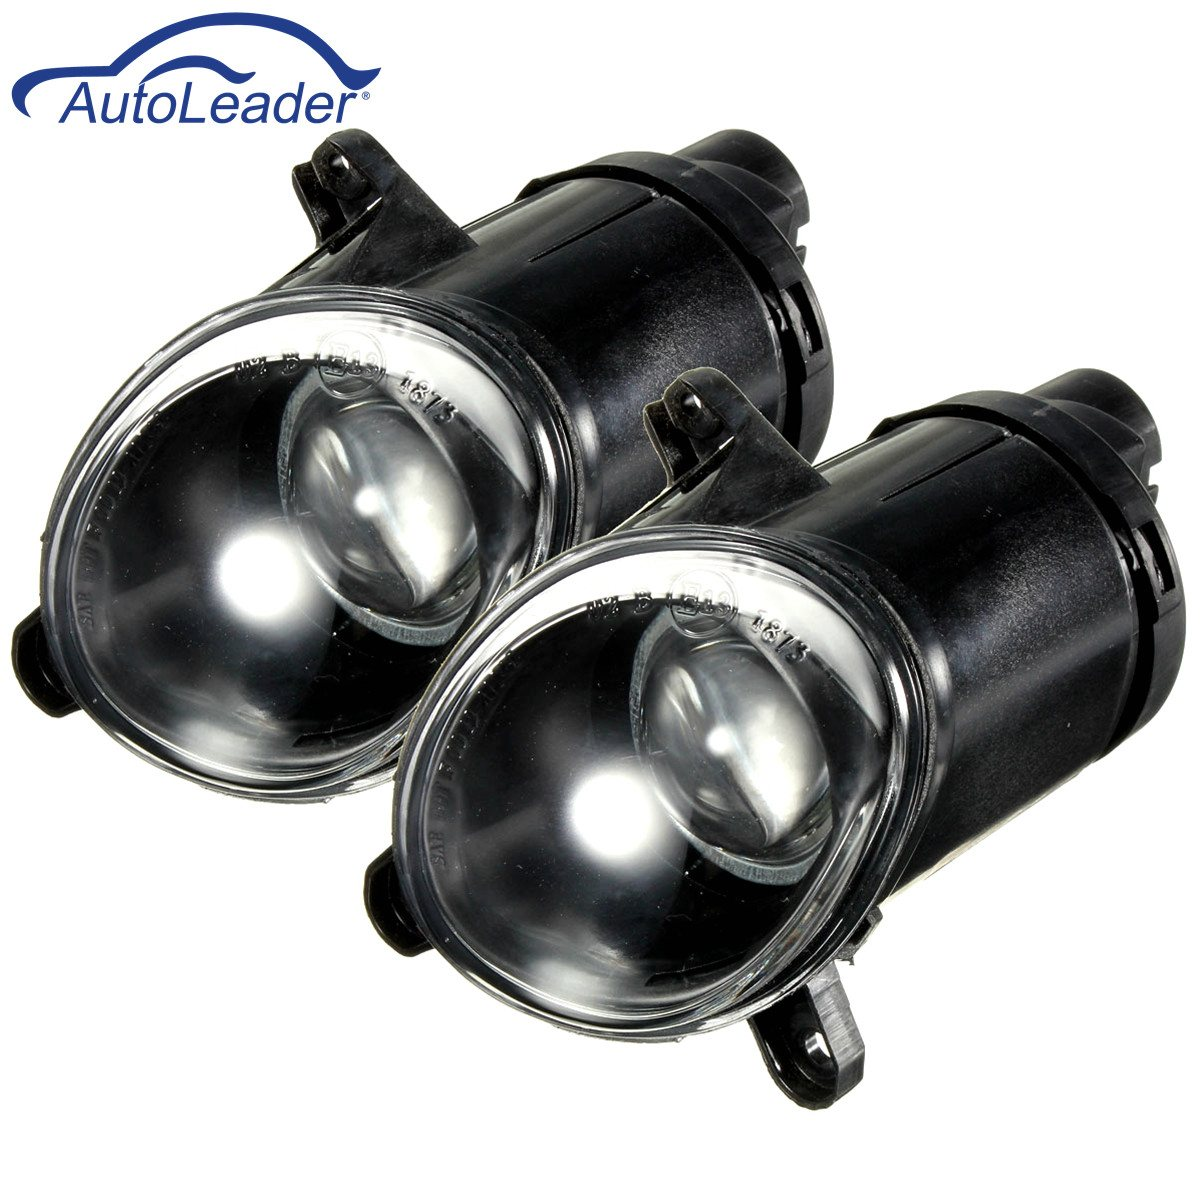 1 Pair Car Front Bumper Fog Light Driving Lamp For VW Passat 3BG B5 2000 2001-2005 H3 Bulb free shipping new pair halogen front fog lamp fog light for vw t5 polo crafter transporter campmob 7h0941699b 7h0941700b